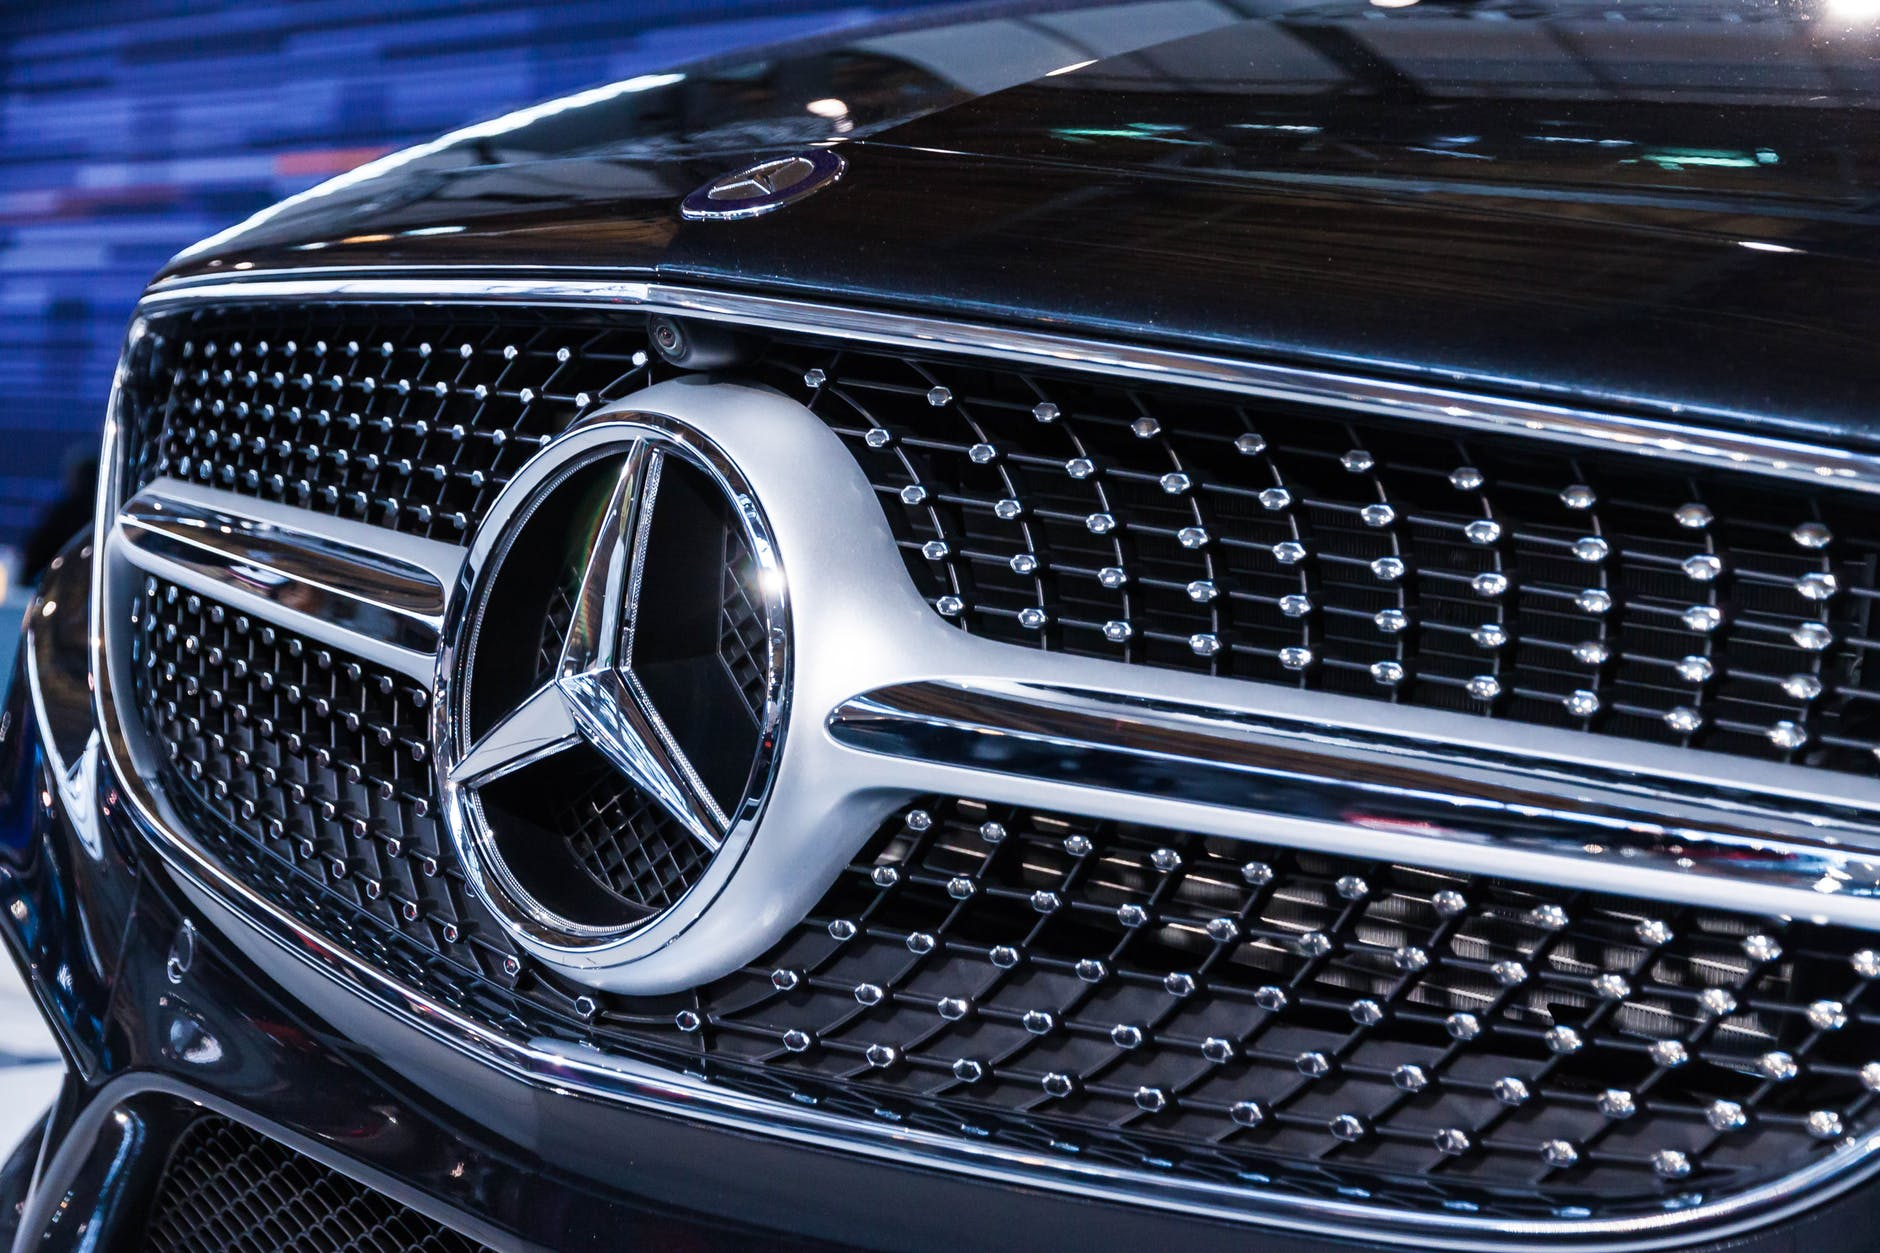 Camper Mercedes: 6 Reasons As To Why You Should Buy It